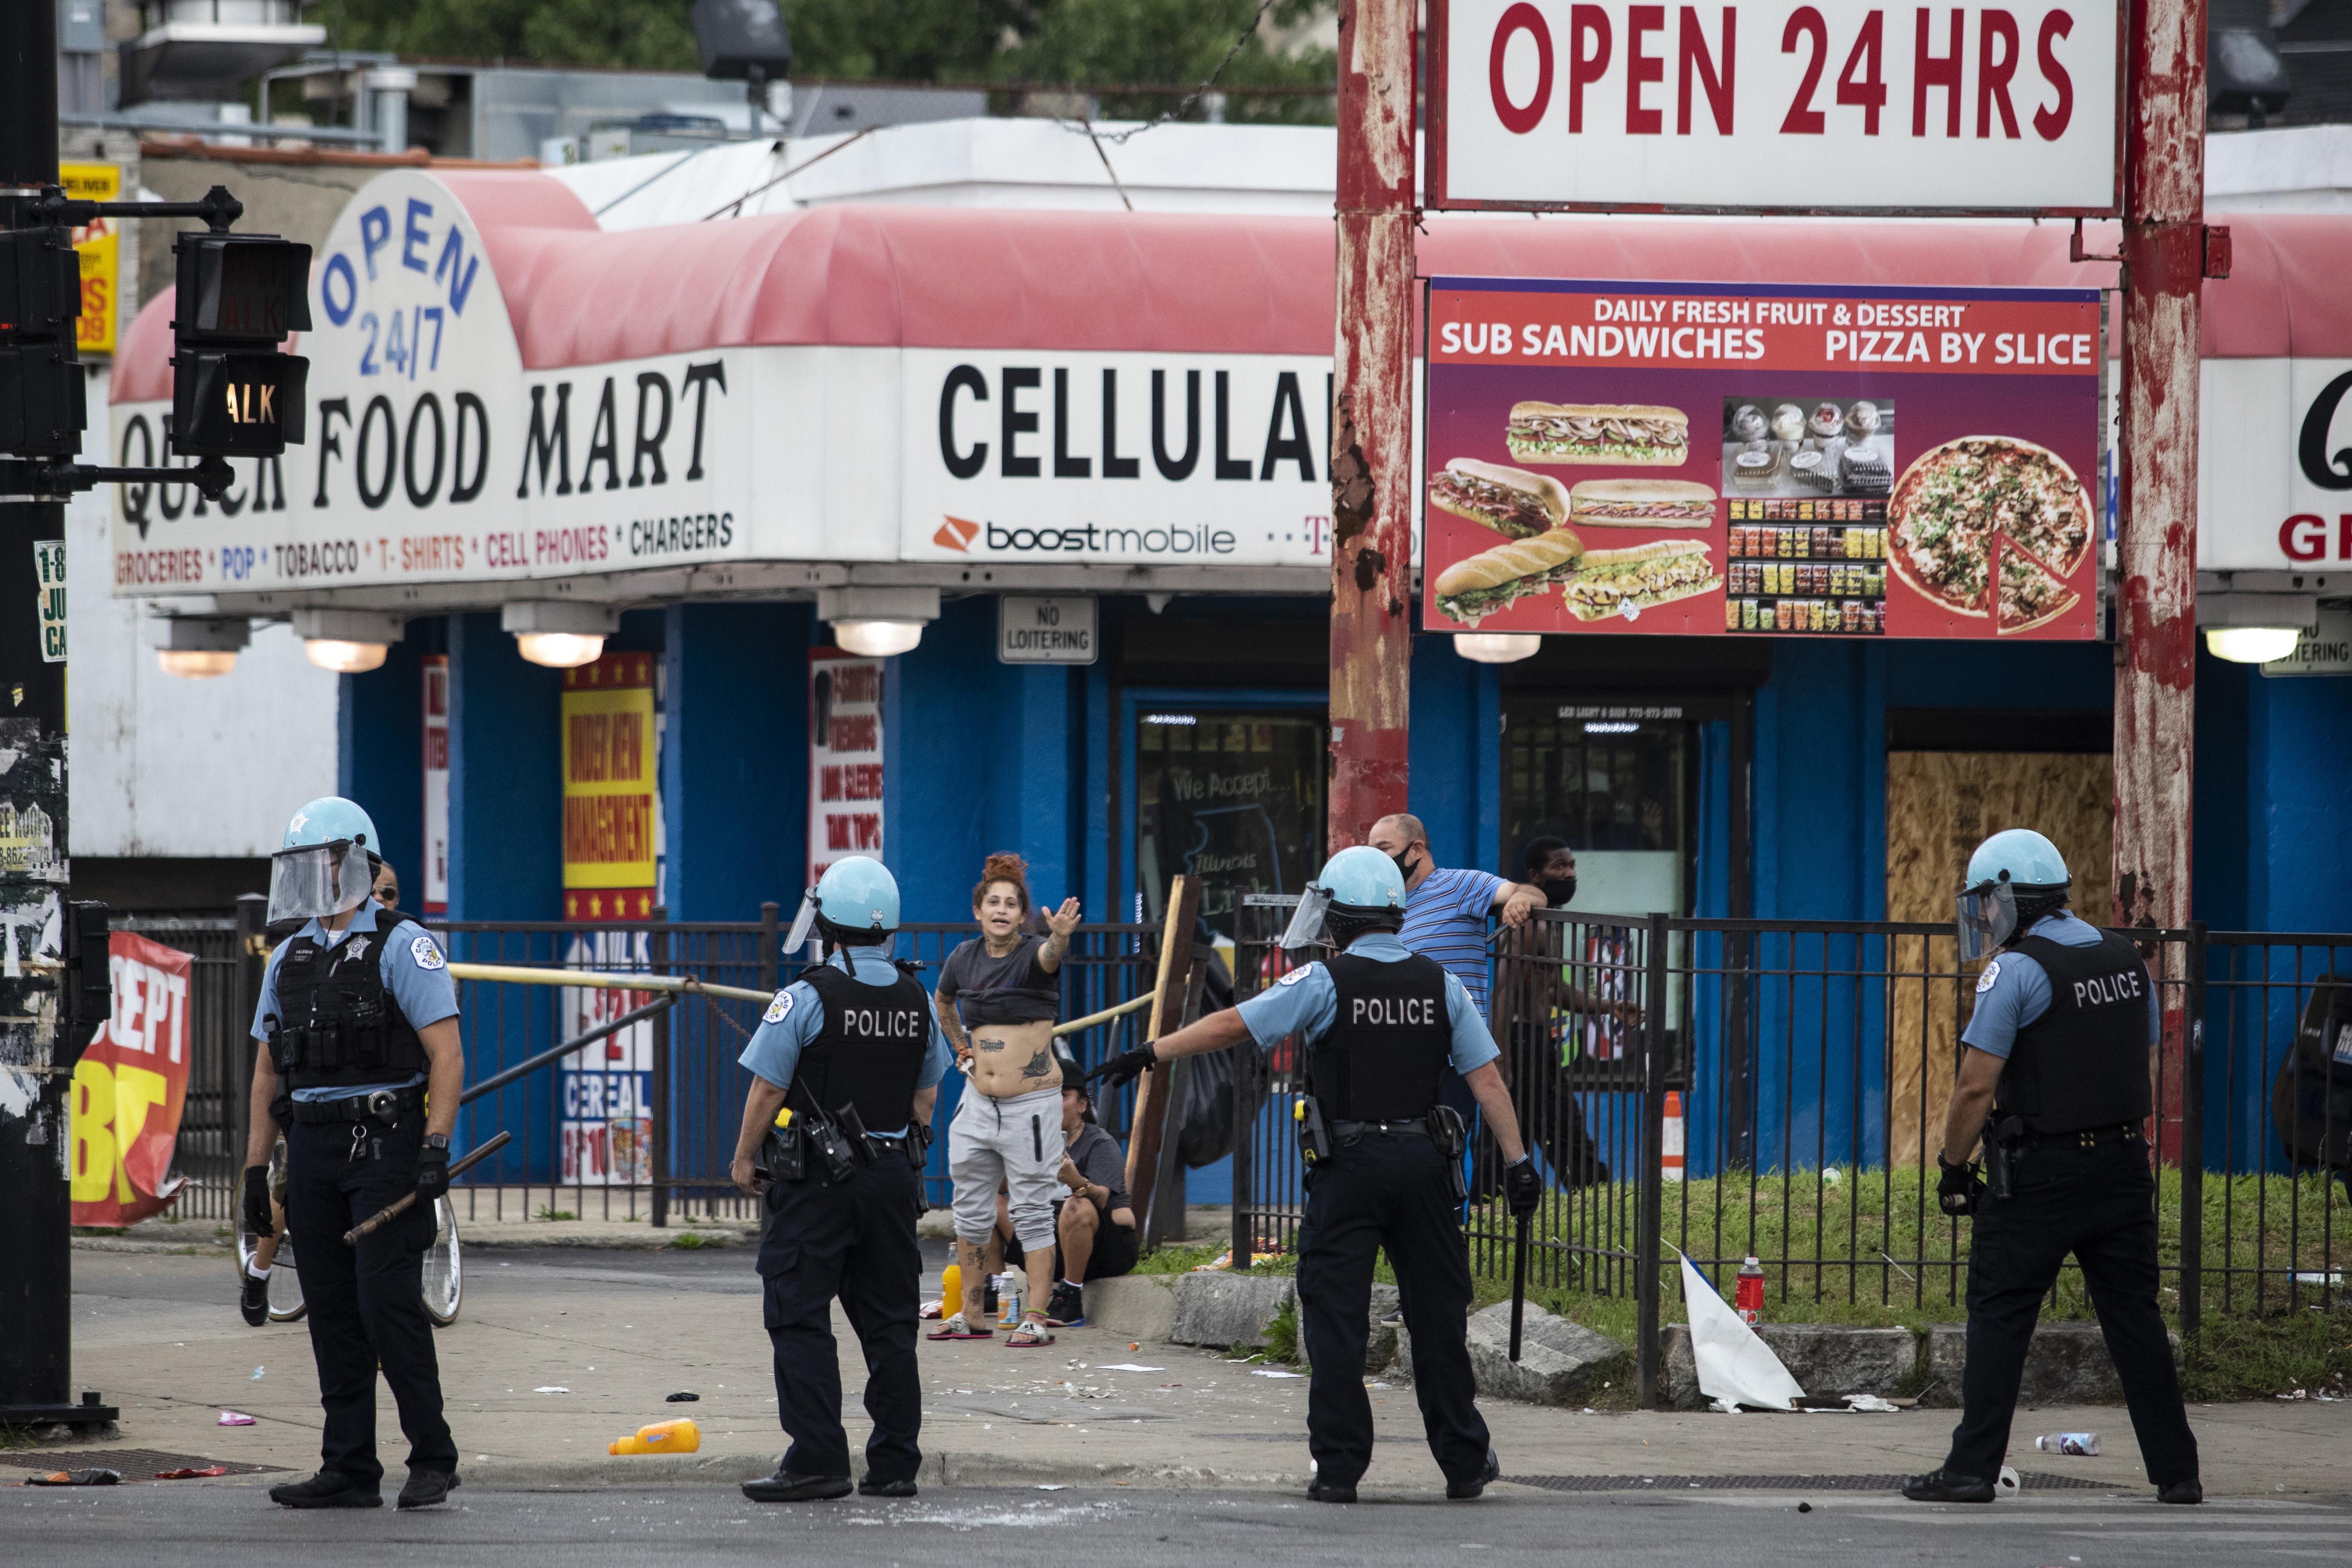 Chicago police officers respond to looting and rioting near West Madison Street and South Keeler Avenue on the West Side, Monday afternoon, Aug. 10, 2020.